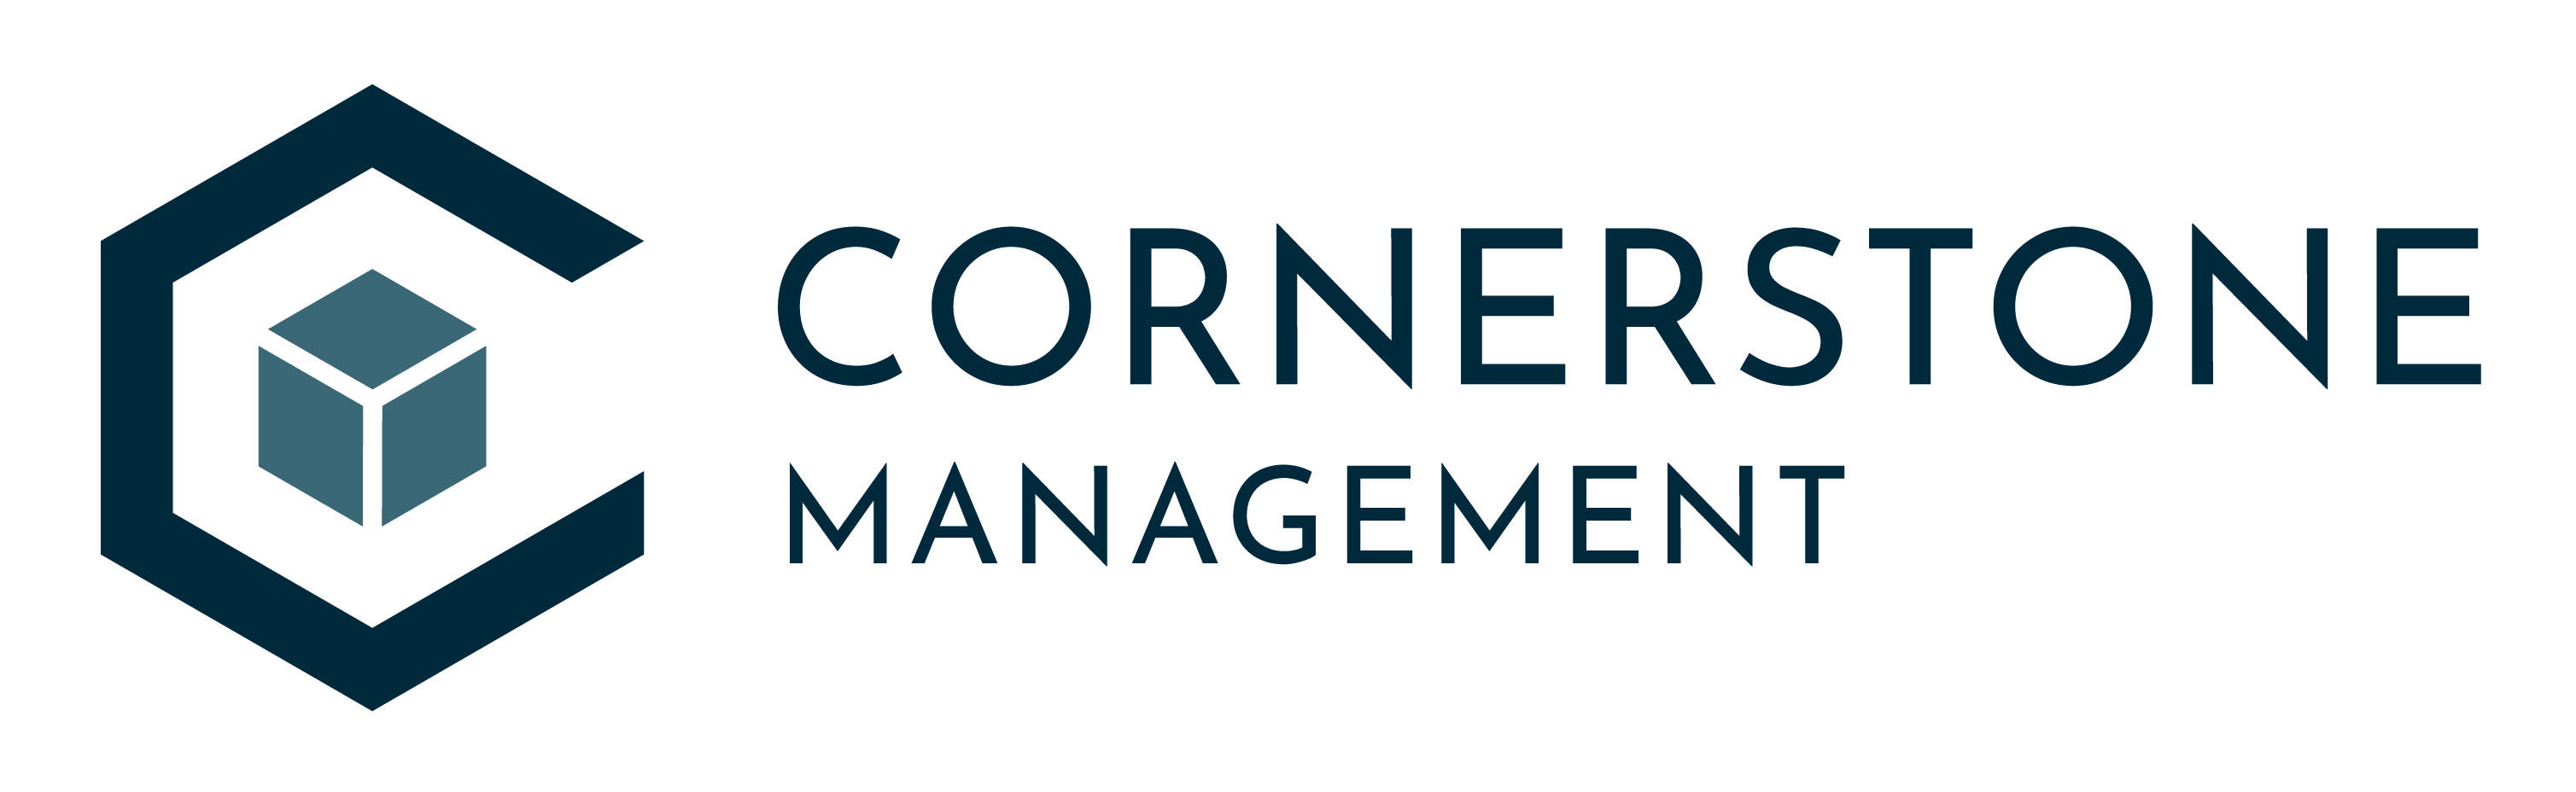 cornerstone-management-logo